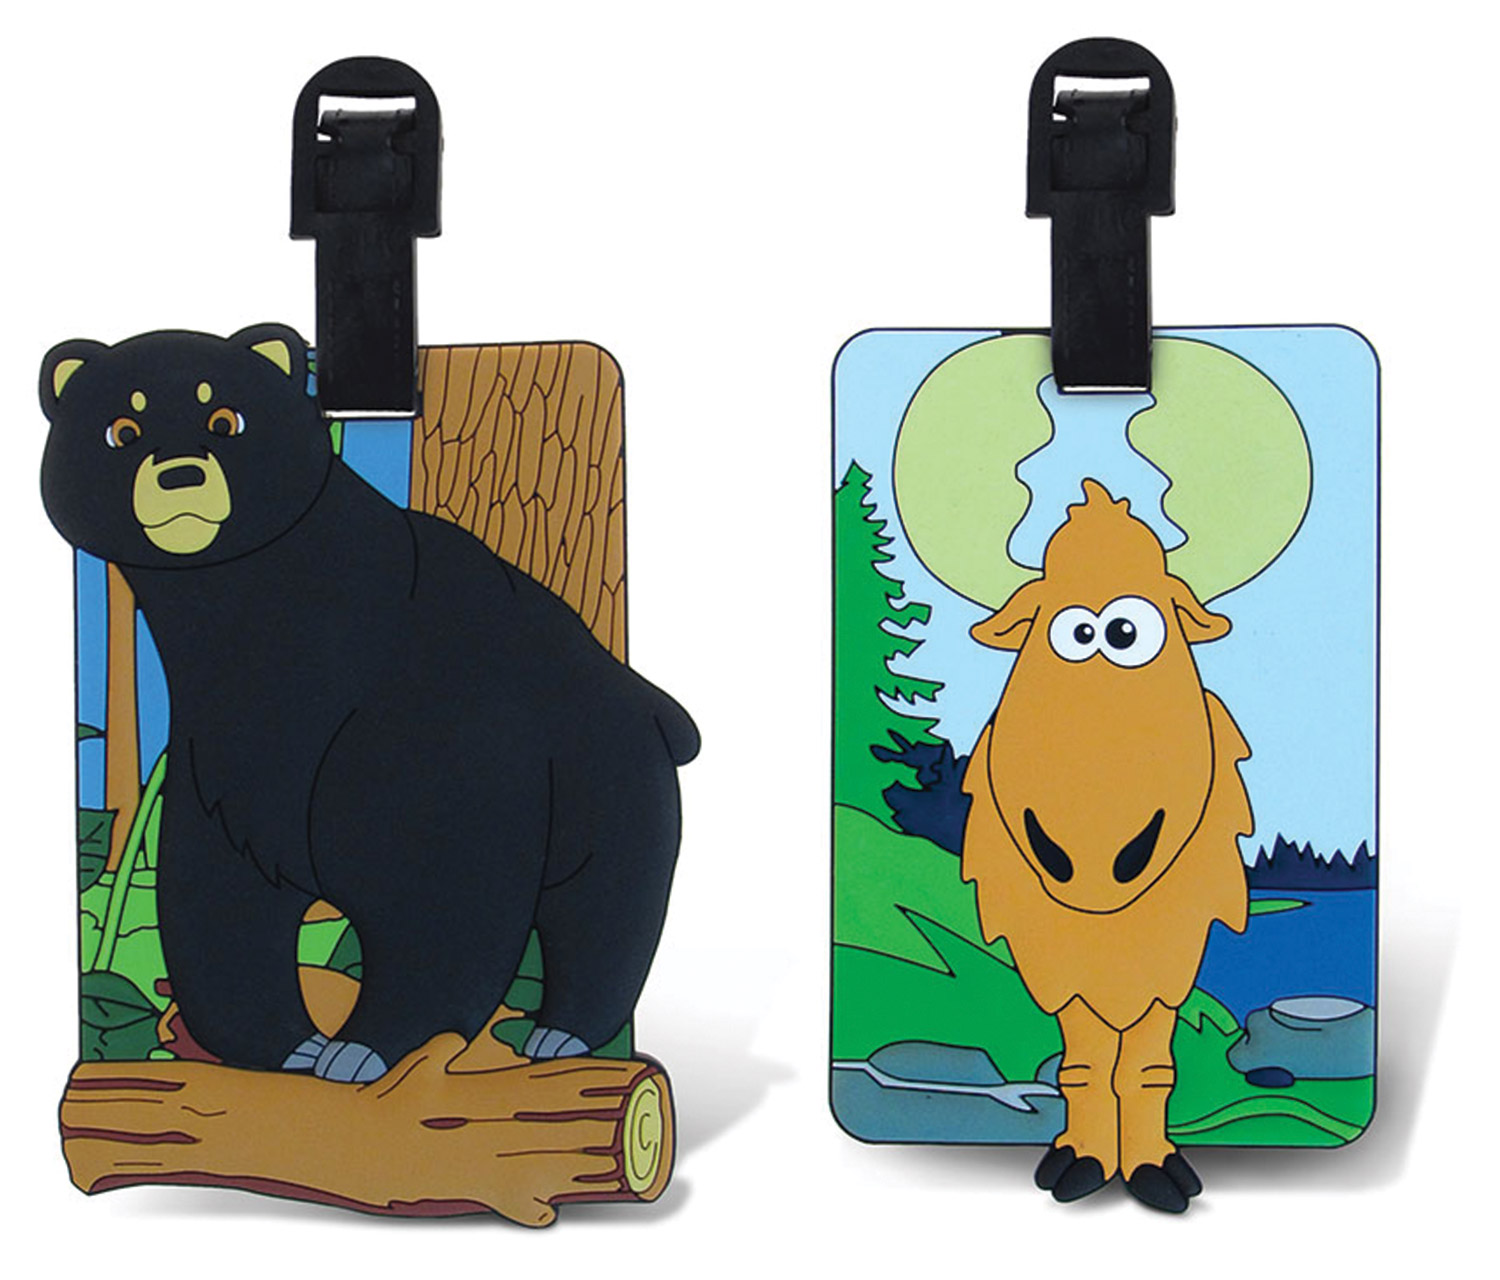 Puzzled Taggage Wild Black Bear And Goofy Moose Luggage T...